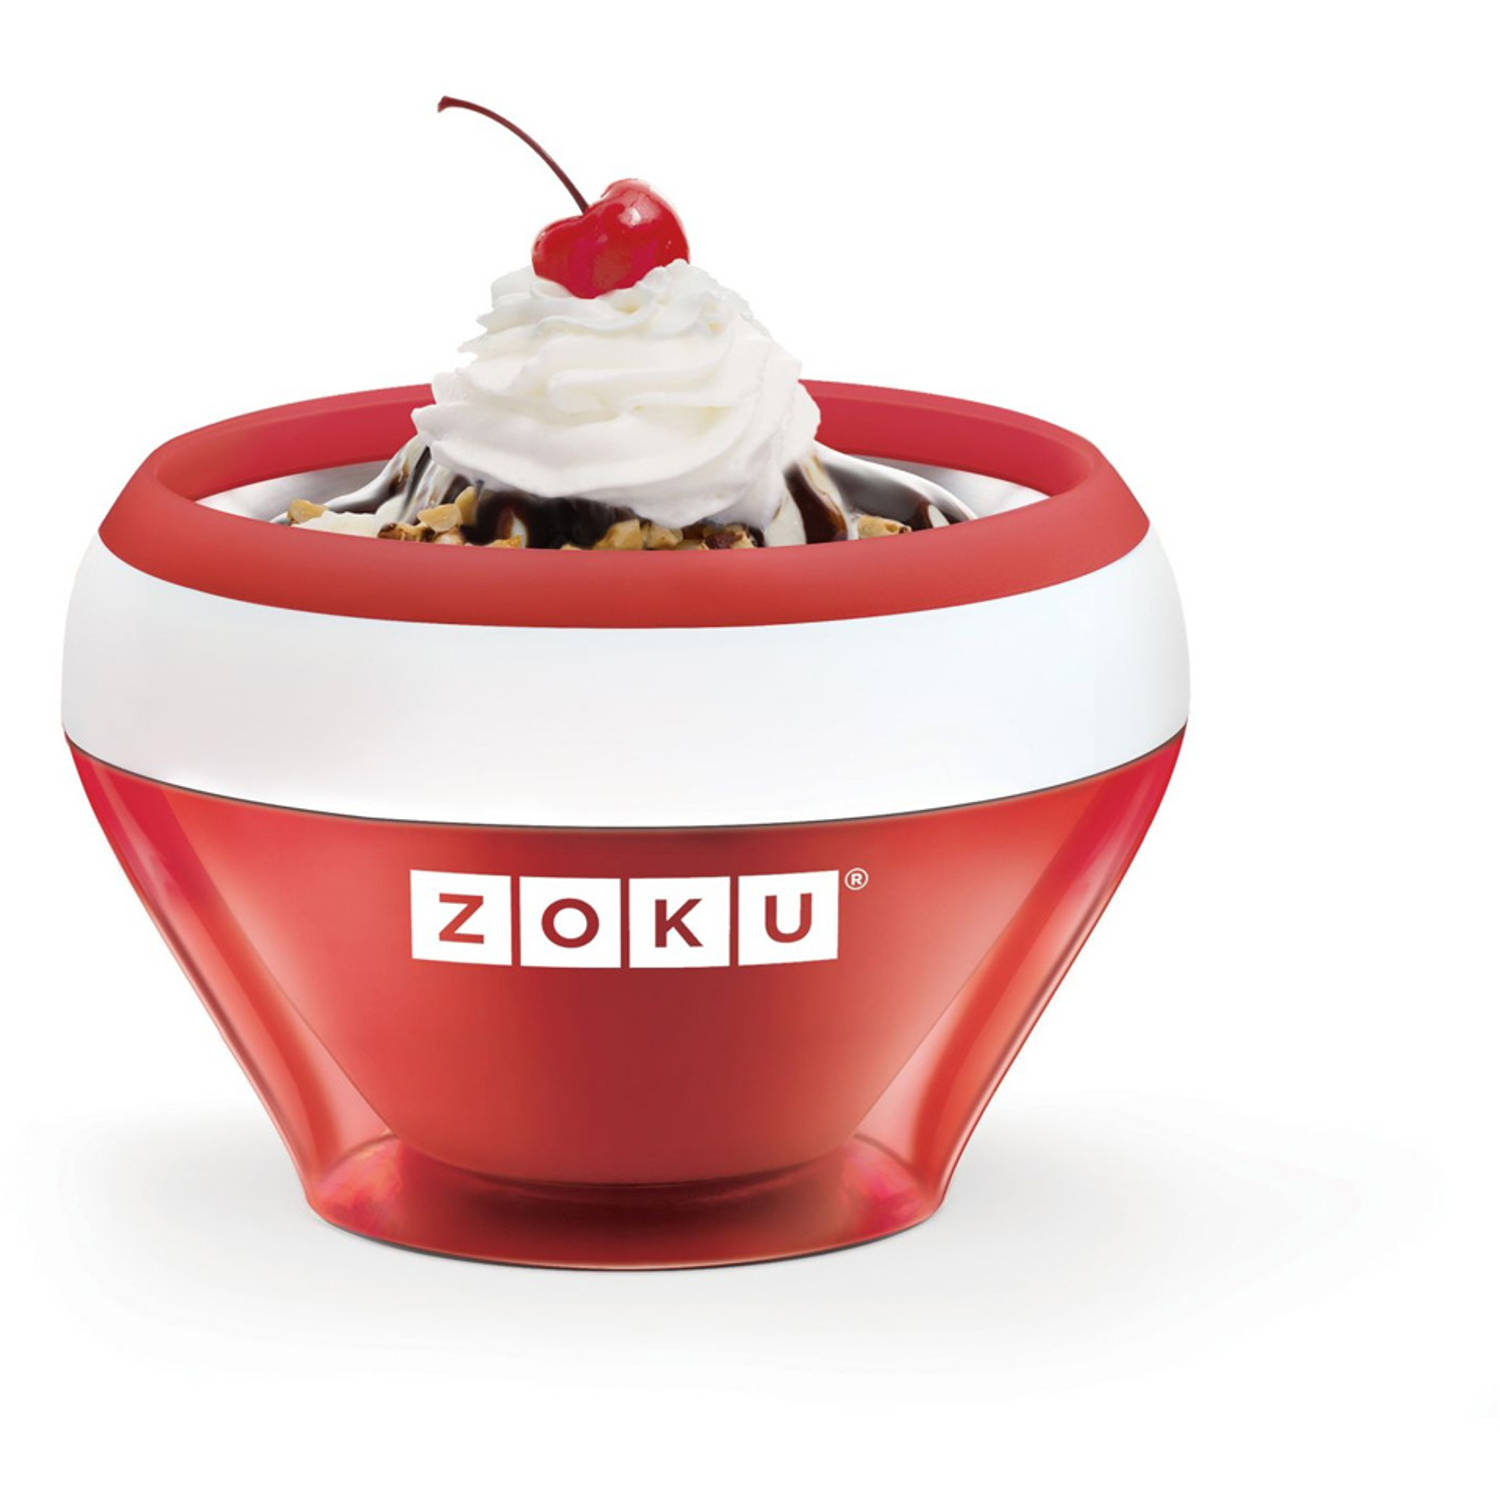 Zoku Ice Cream Maker Rood